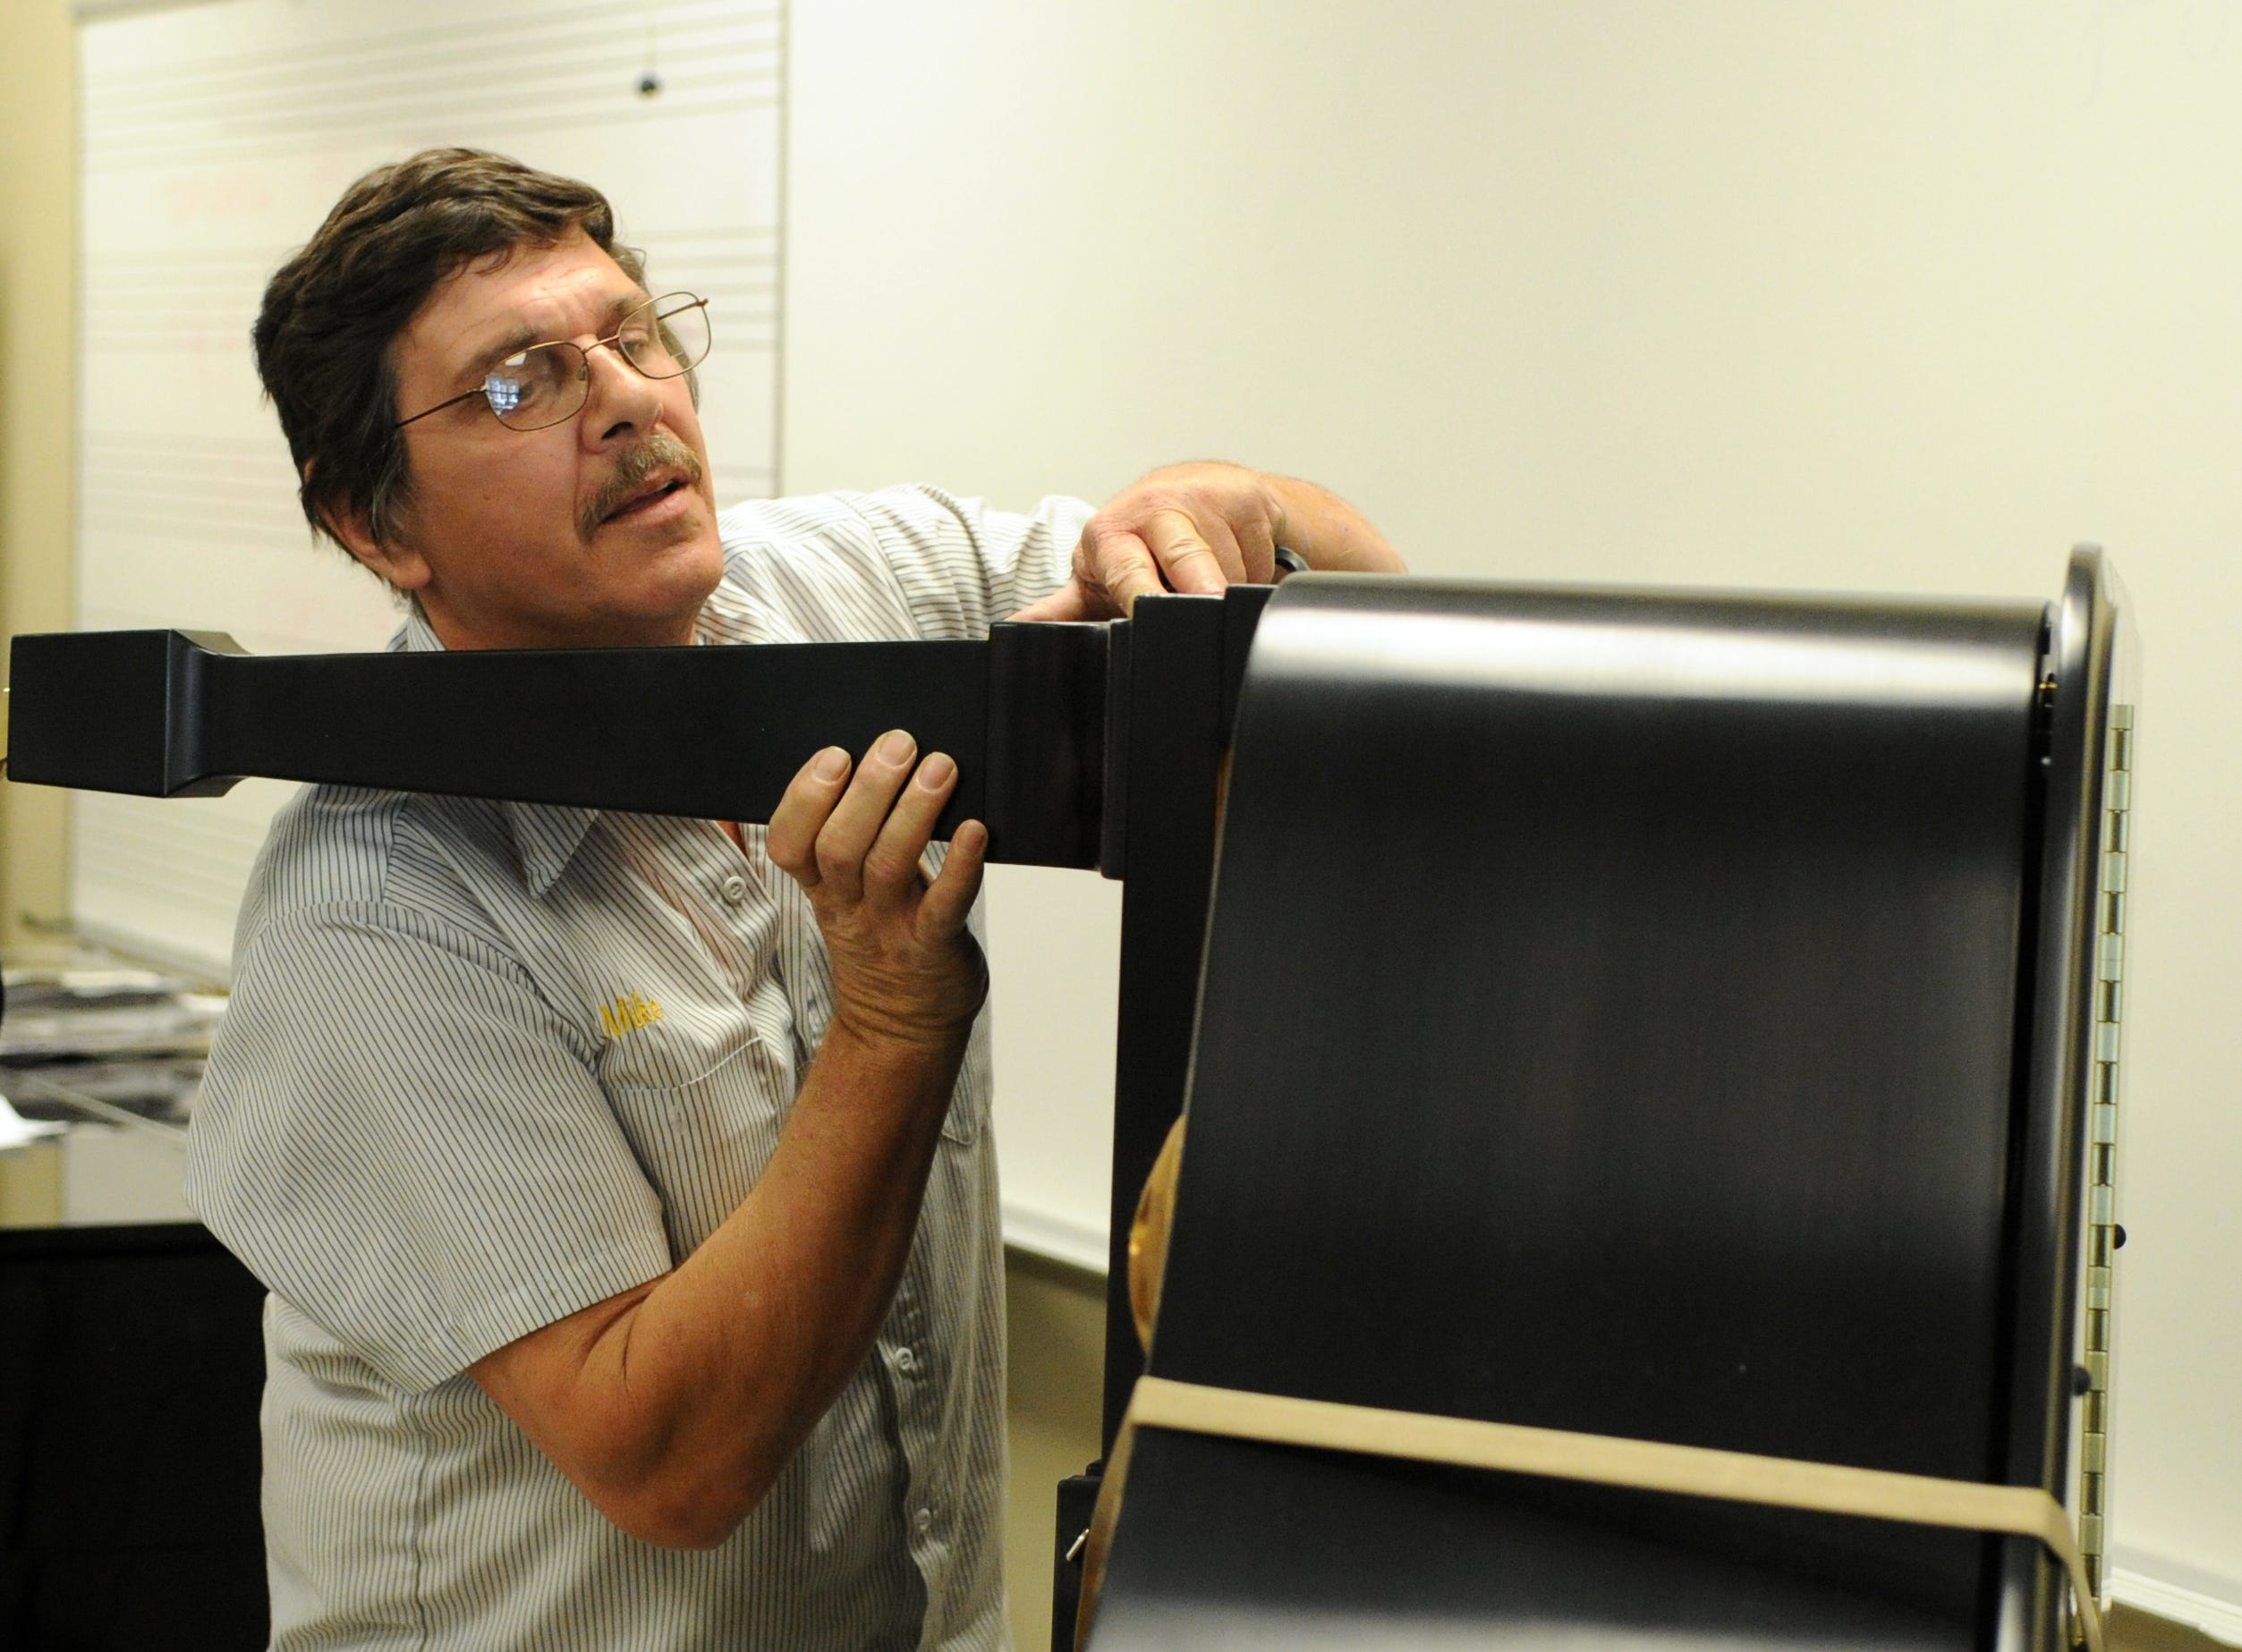 Mike Dheohary attaches the leg to a Steinway grand piano at Pellissippi State Community College Thursday, May 5, 2011.  Dheohary works with the American Piano Gallery and helped deliver 10 Steinway pianos to the college as a part of their all-Steinway status.